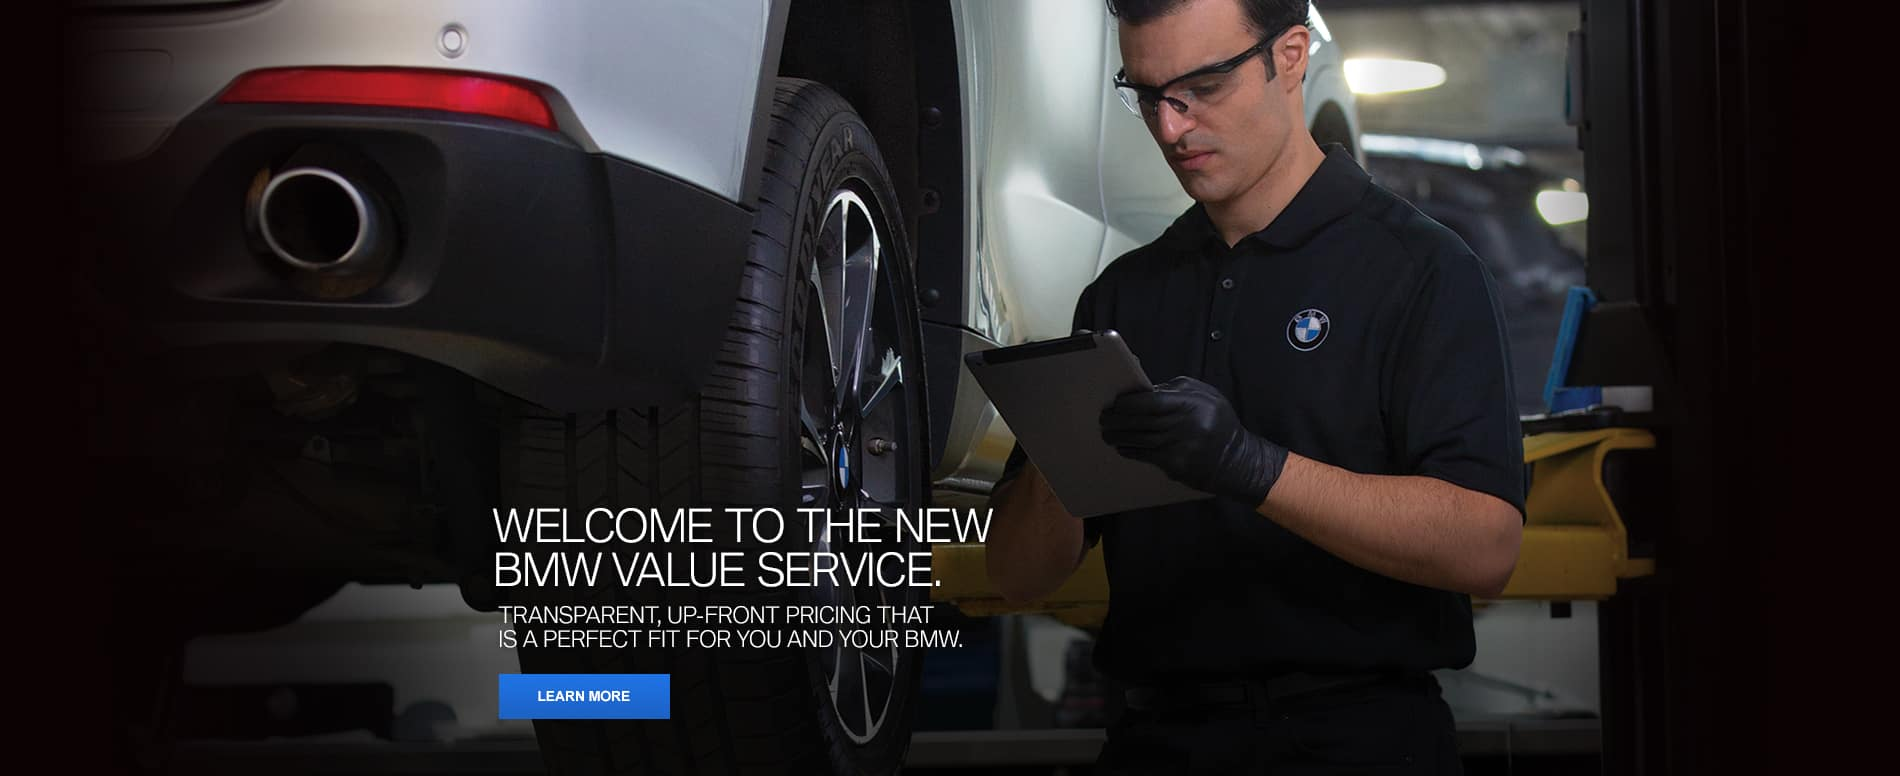 Value Service at Circle BMW in Eatontown NJ